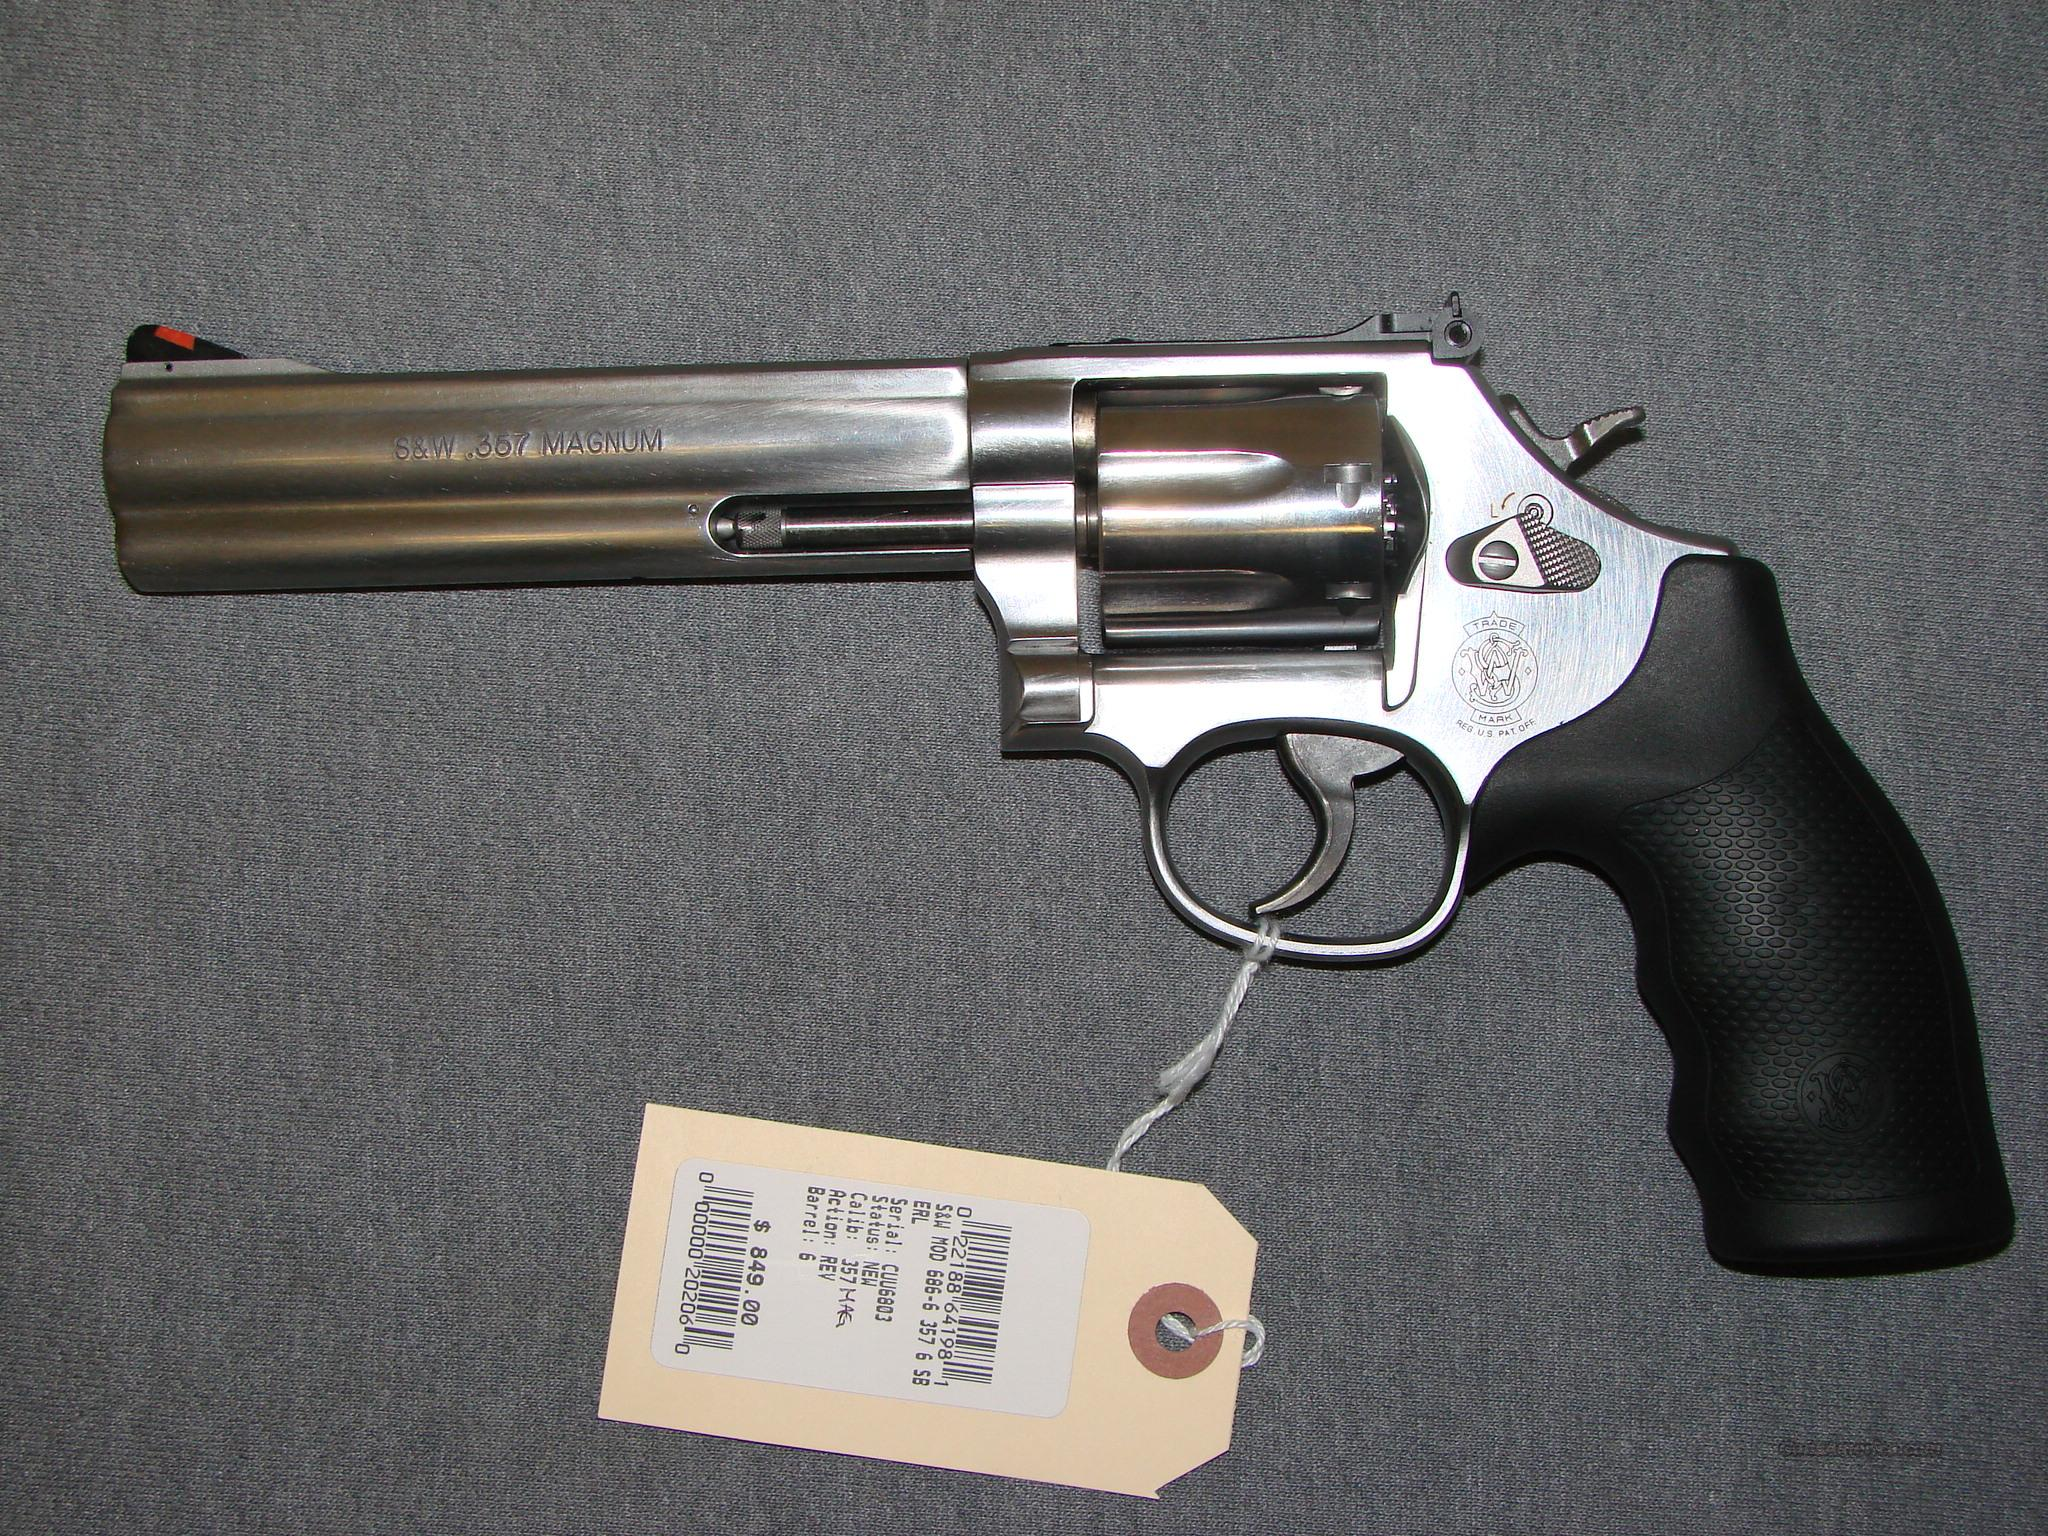 Smith&Wesson 686-6  Guns > Pistols > Smith & Wesson Revolvers > Full Frame Revolver